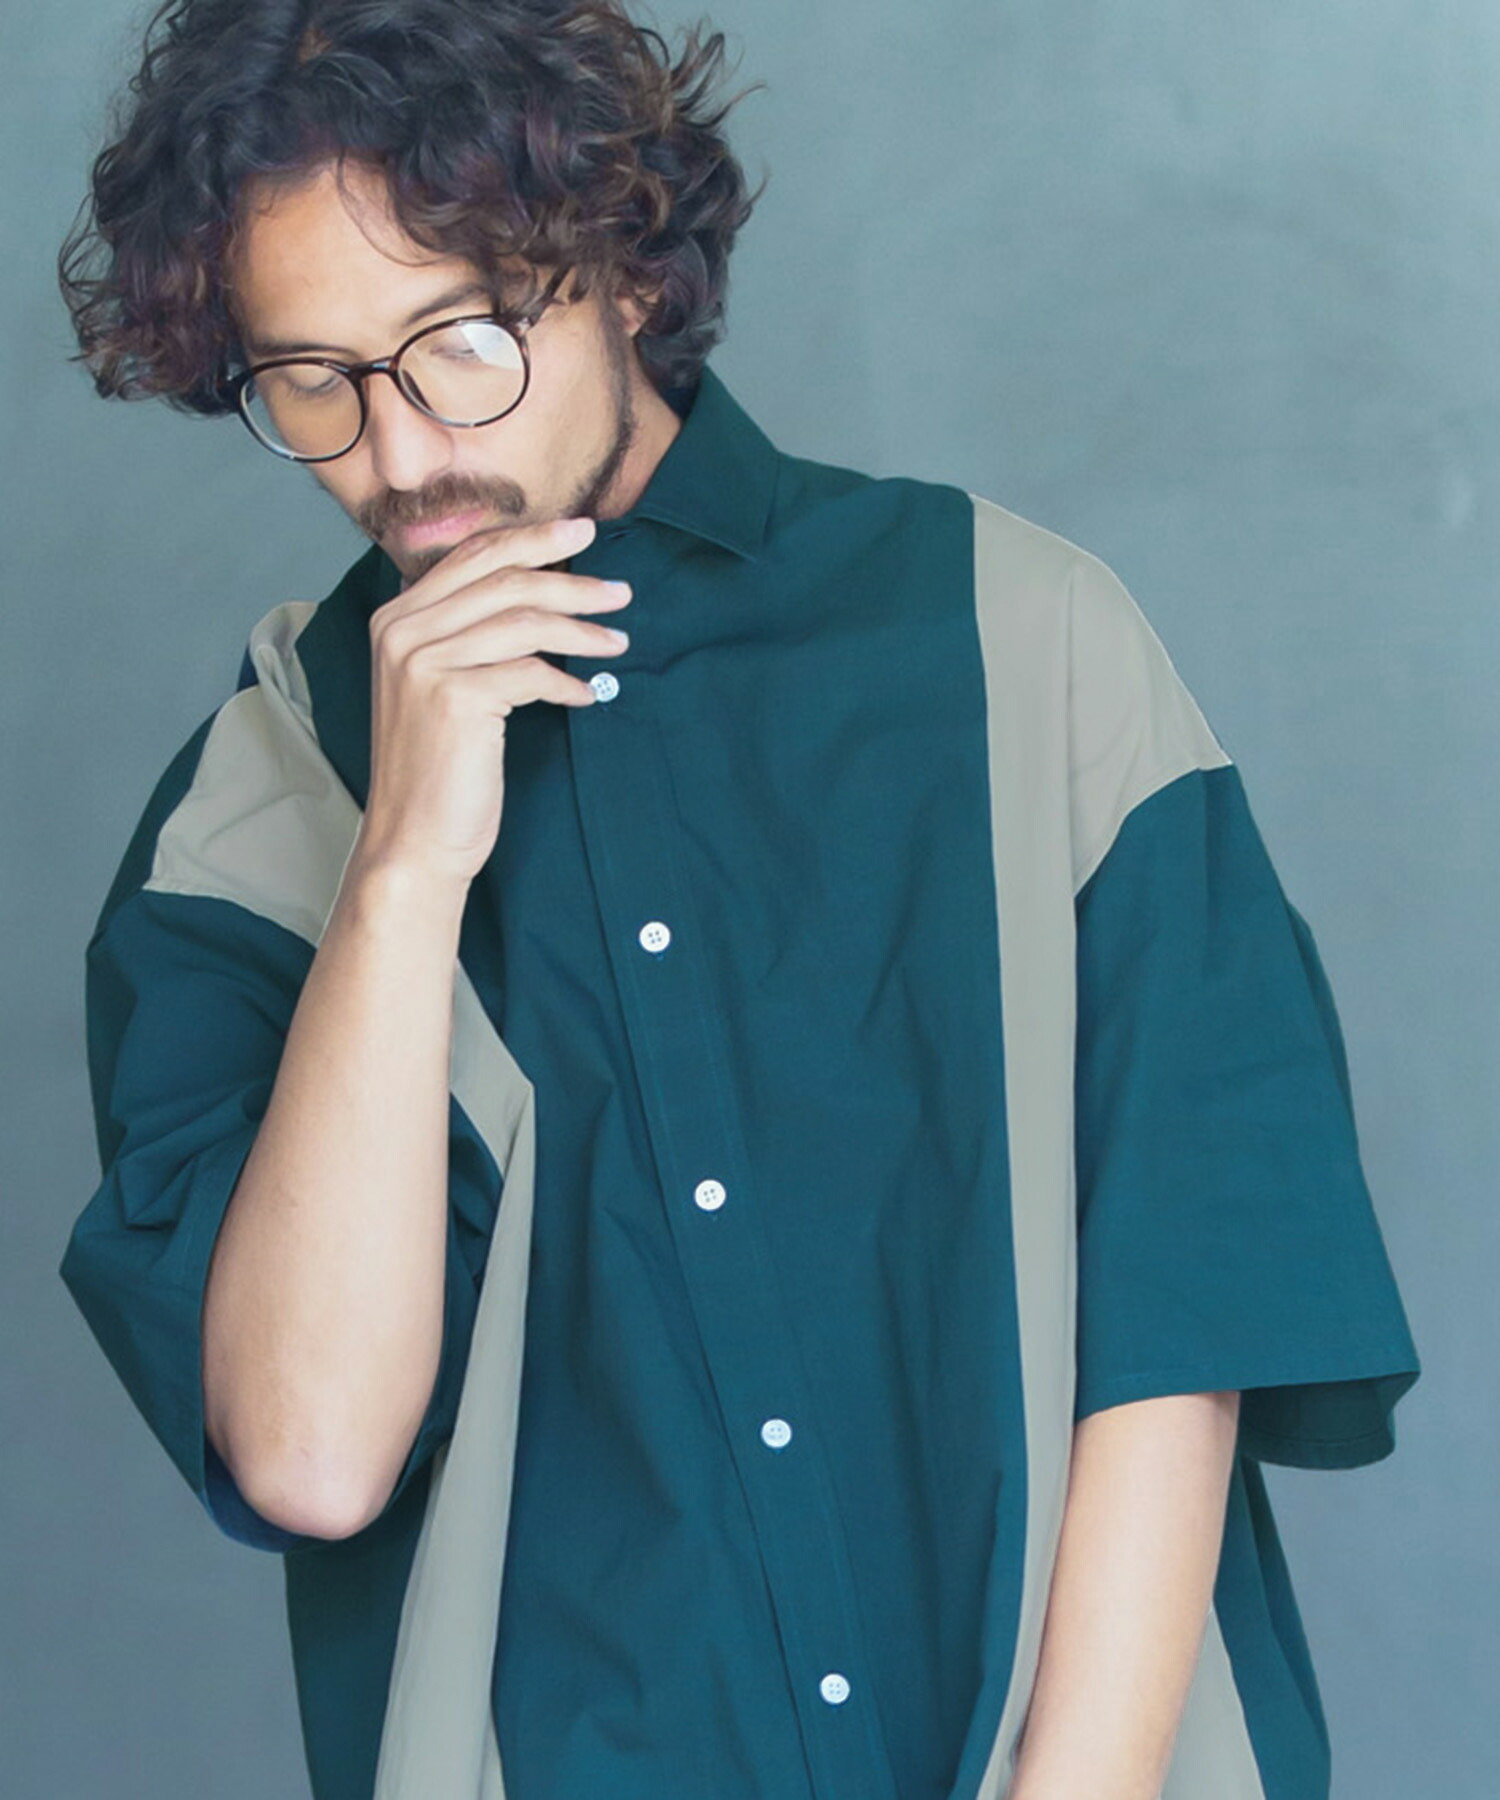 【ANGENEHM(アンゲネーム)】Flip Over Size Short Sleeve Shirts (MADE IN JAPAN) シャツ(ANG-052)